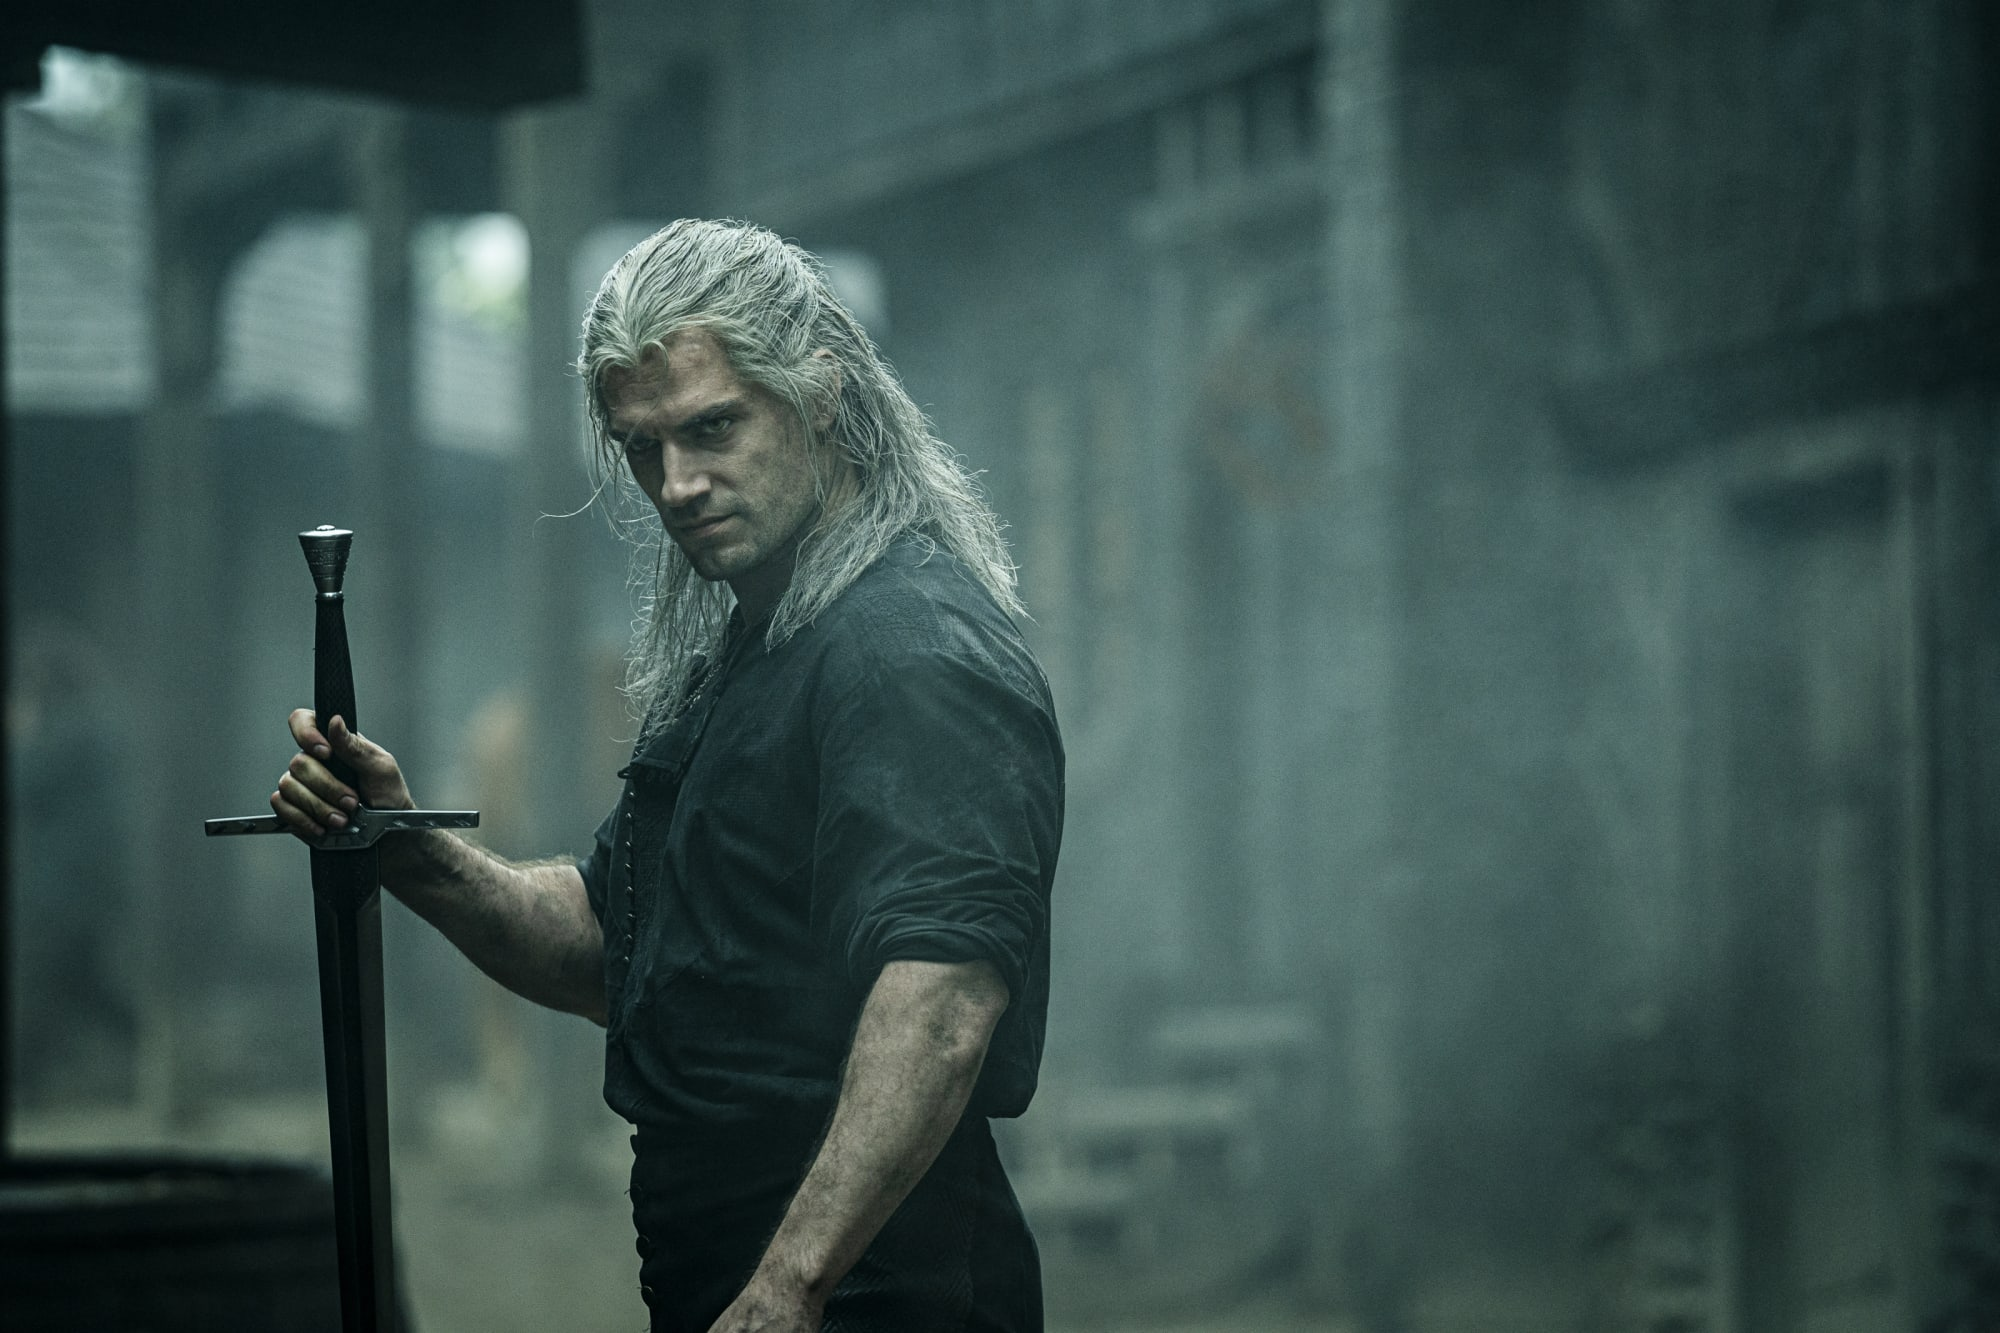 Dress up as Geralt of Rivia from The Witcher in a DIY Halloween costume